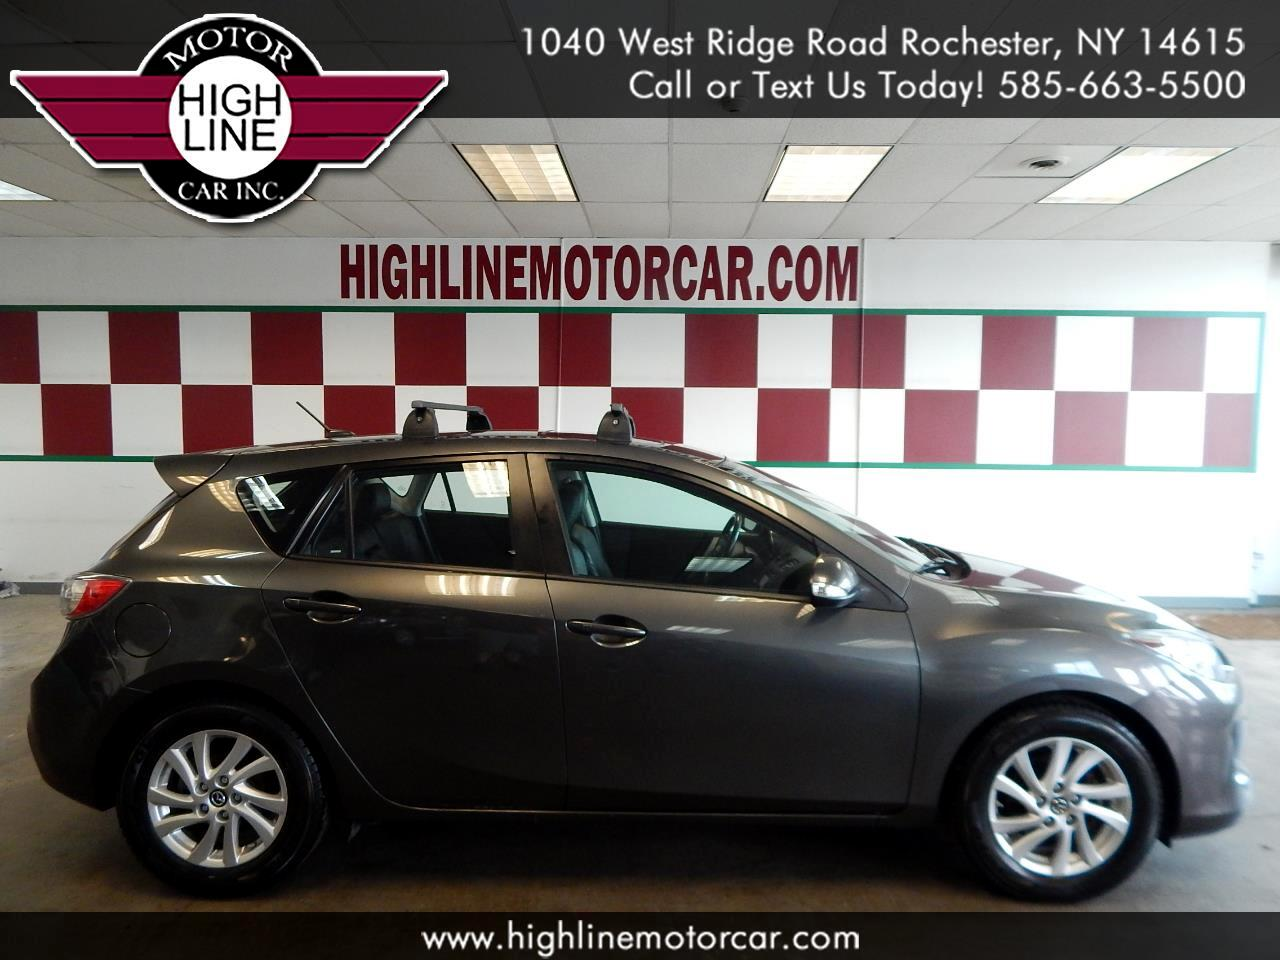 2013 Mazda MAZDA3 5dr HB Man i Grand Touring